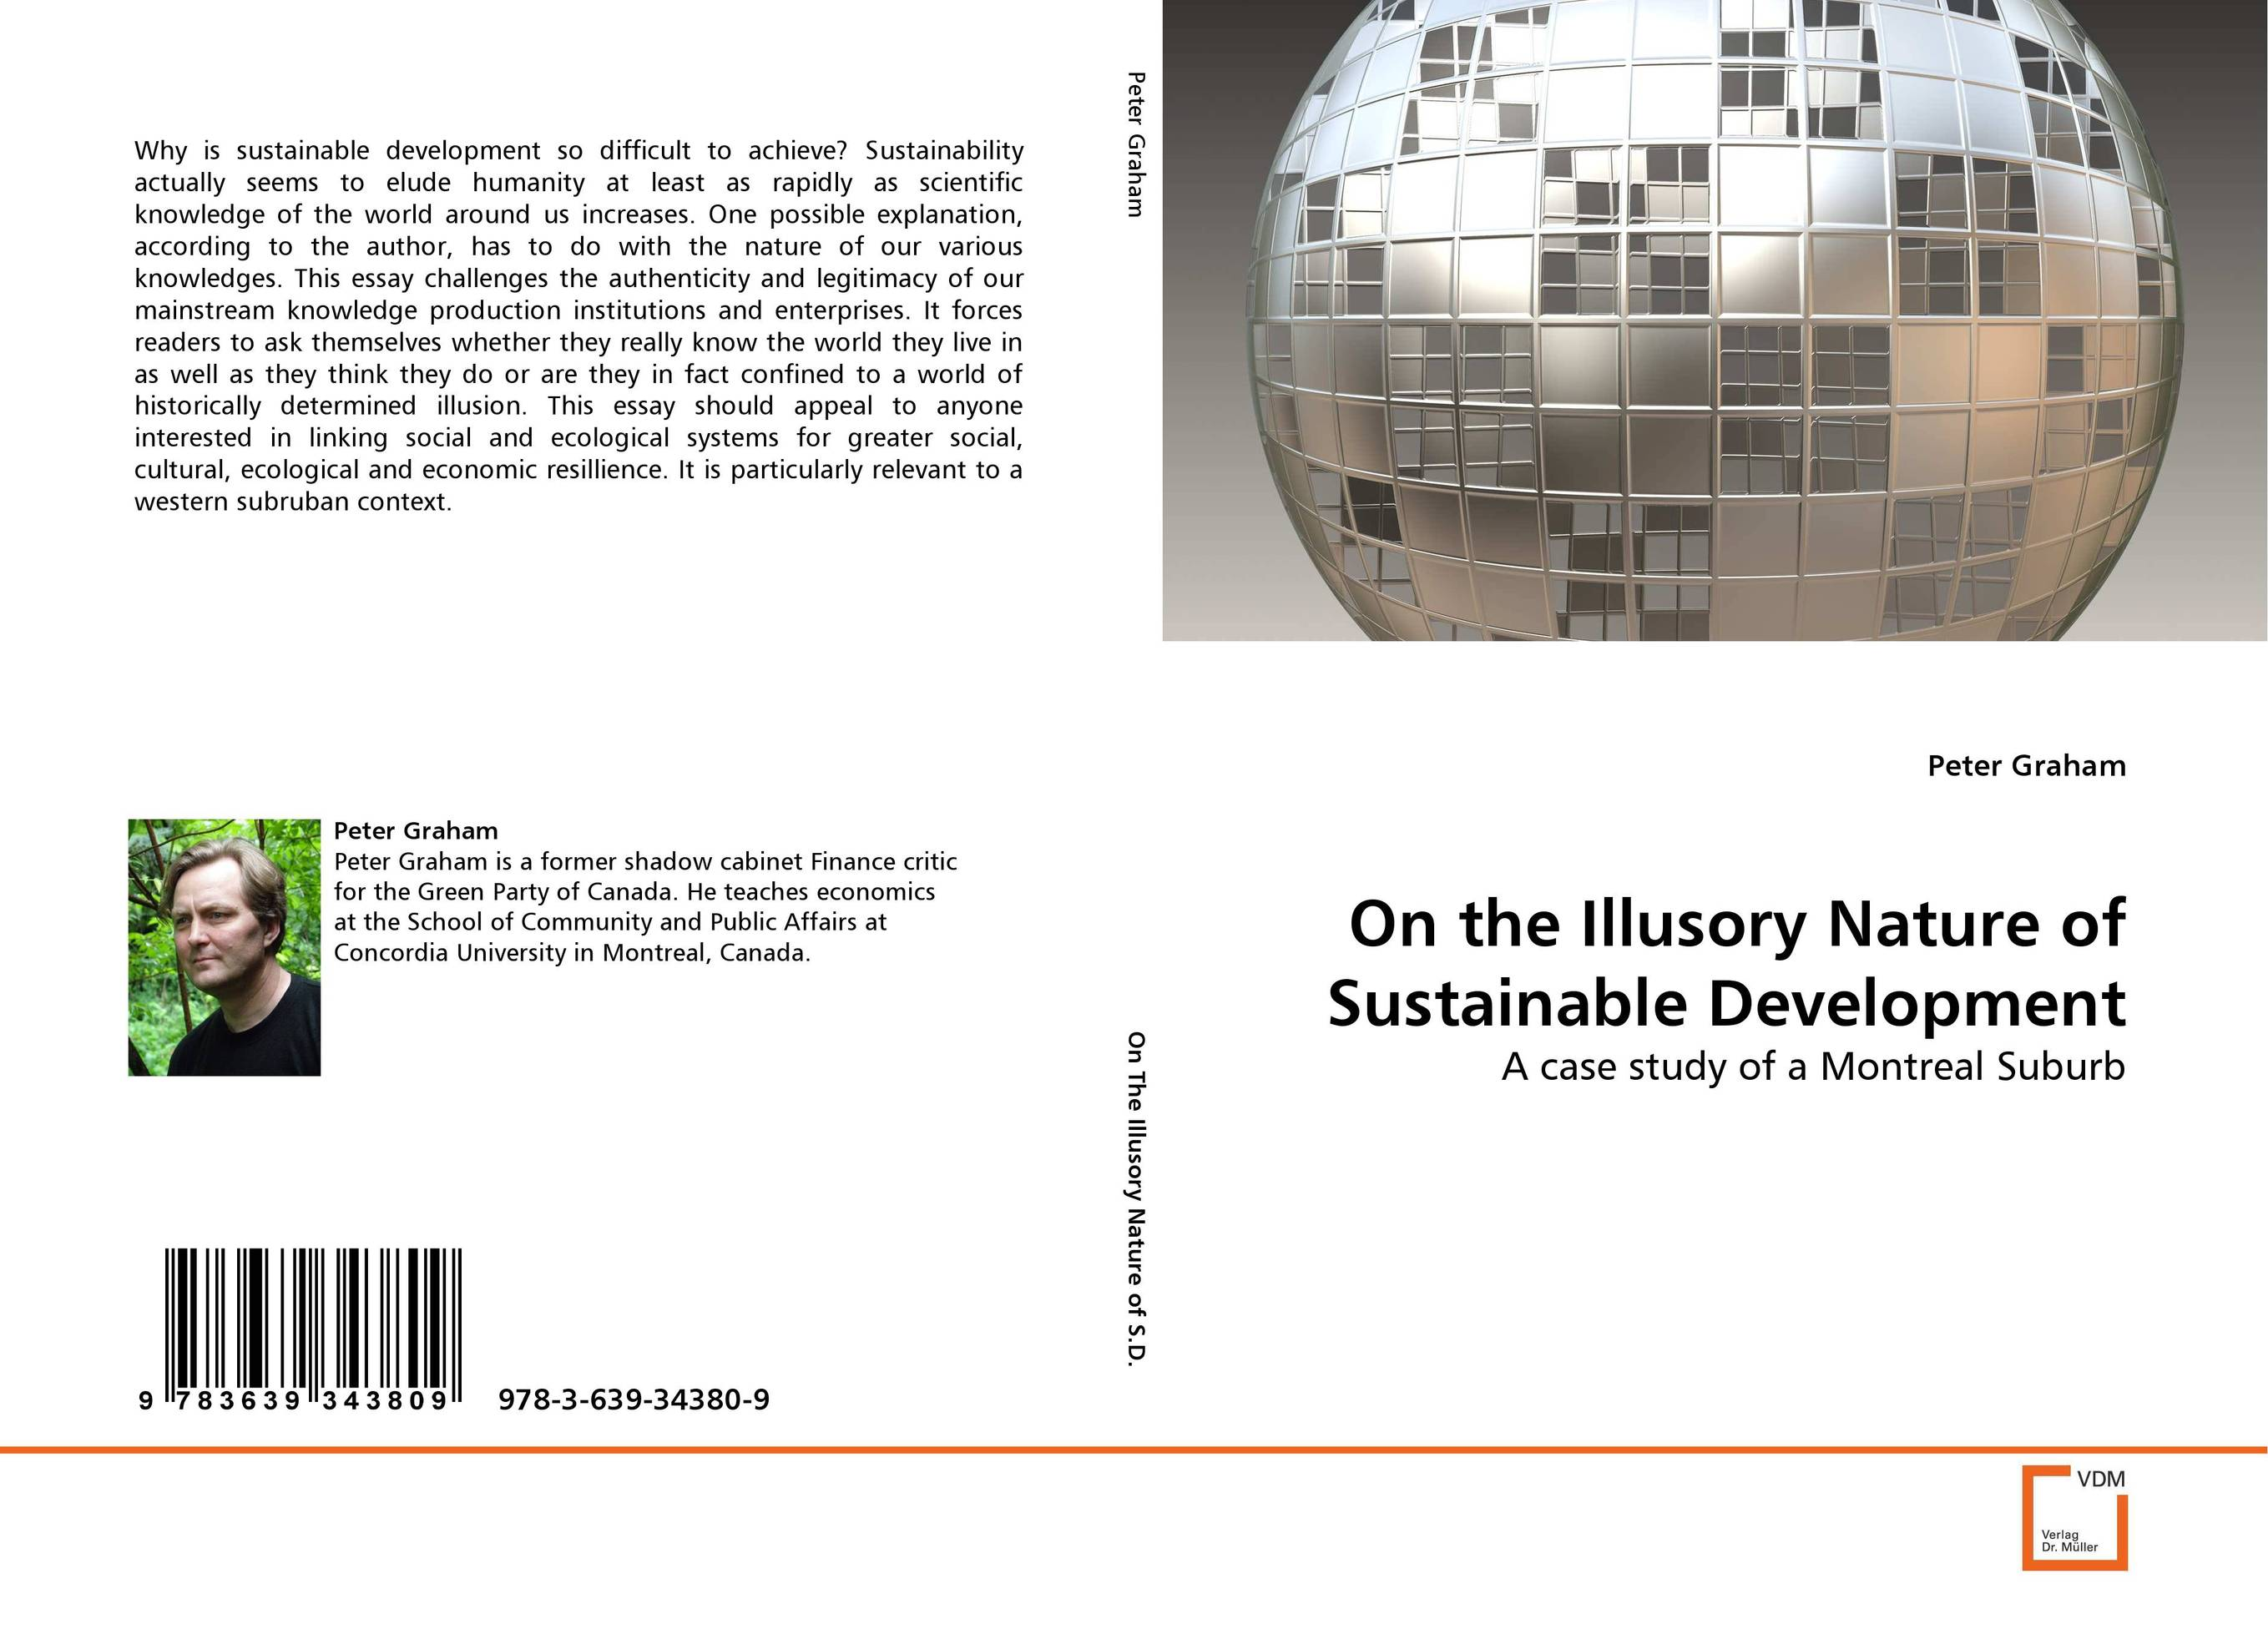 On the Illusory Nature of Sustainable Development logos new accords of knowledge as opposed to tekne challenges